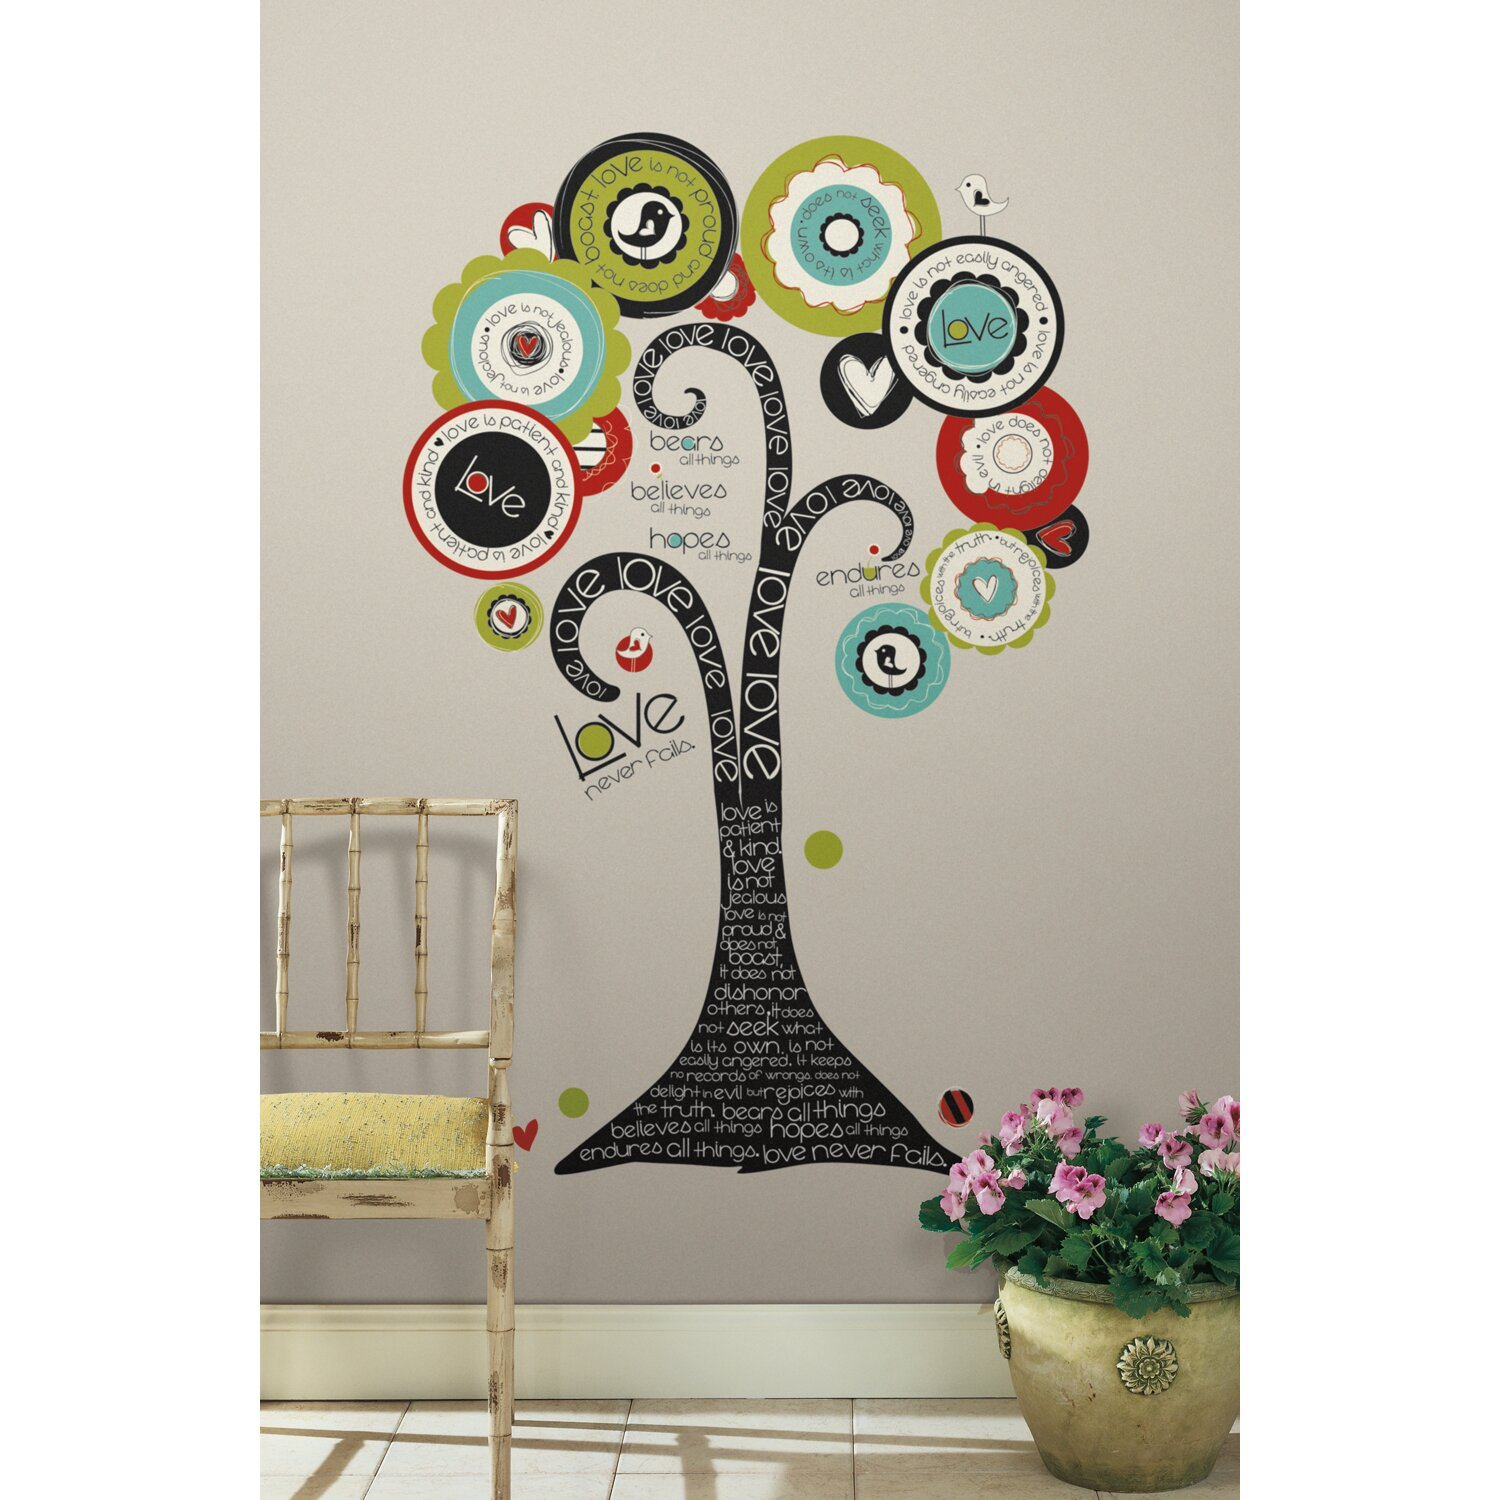 Room Mates Peel and Stick Giant 32 Piece Tree of Hope Wall Decal & Reviews  Wayfair